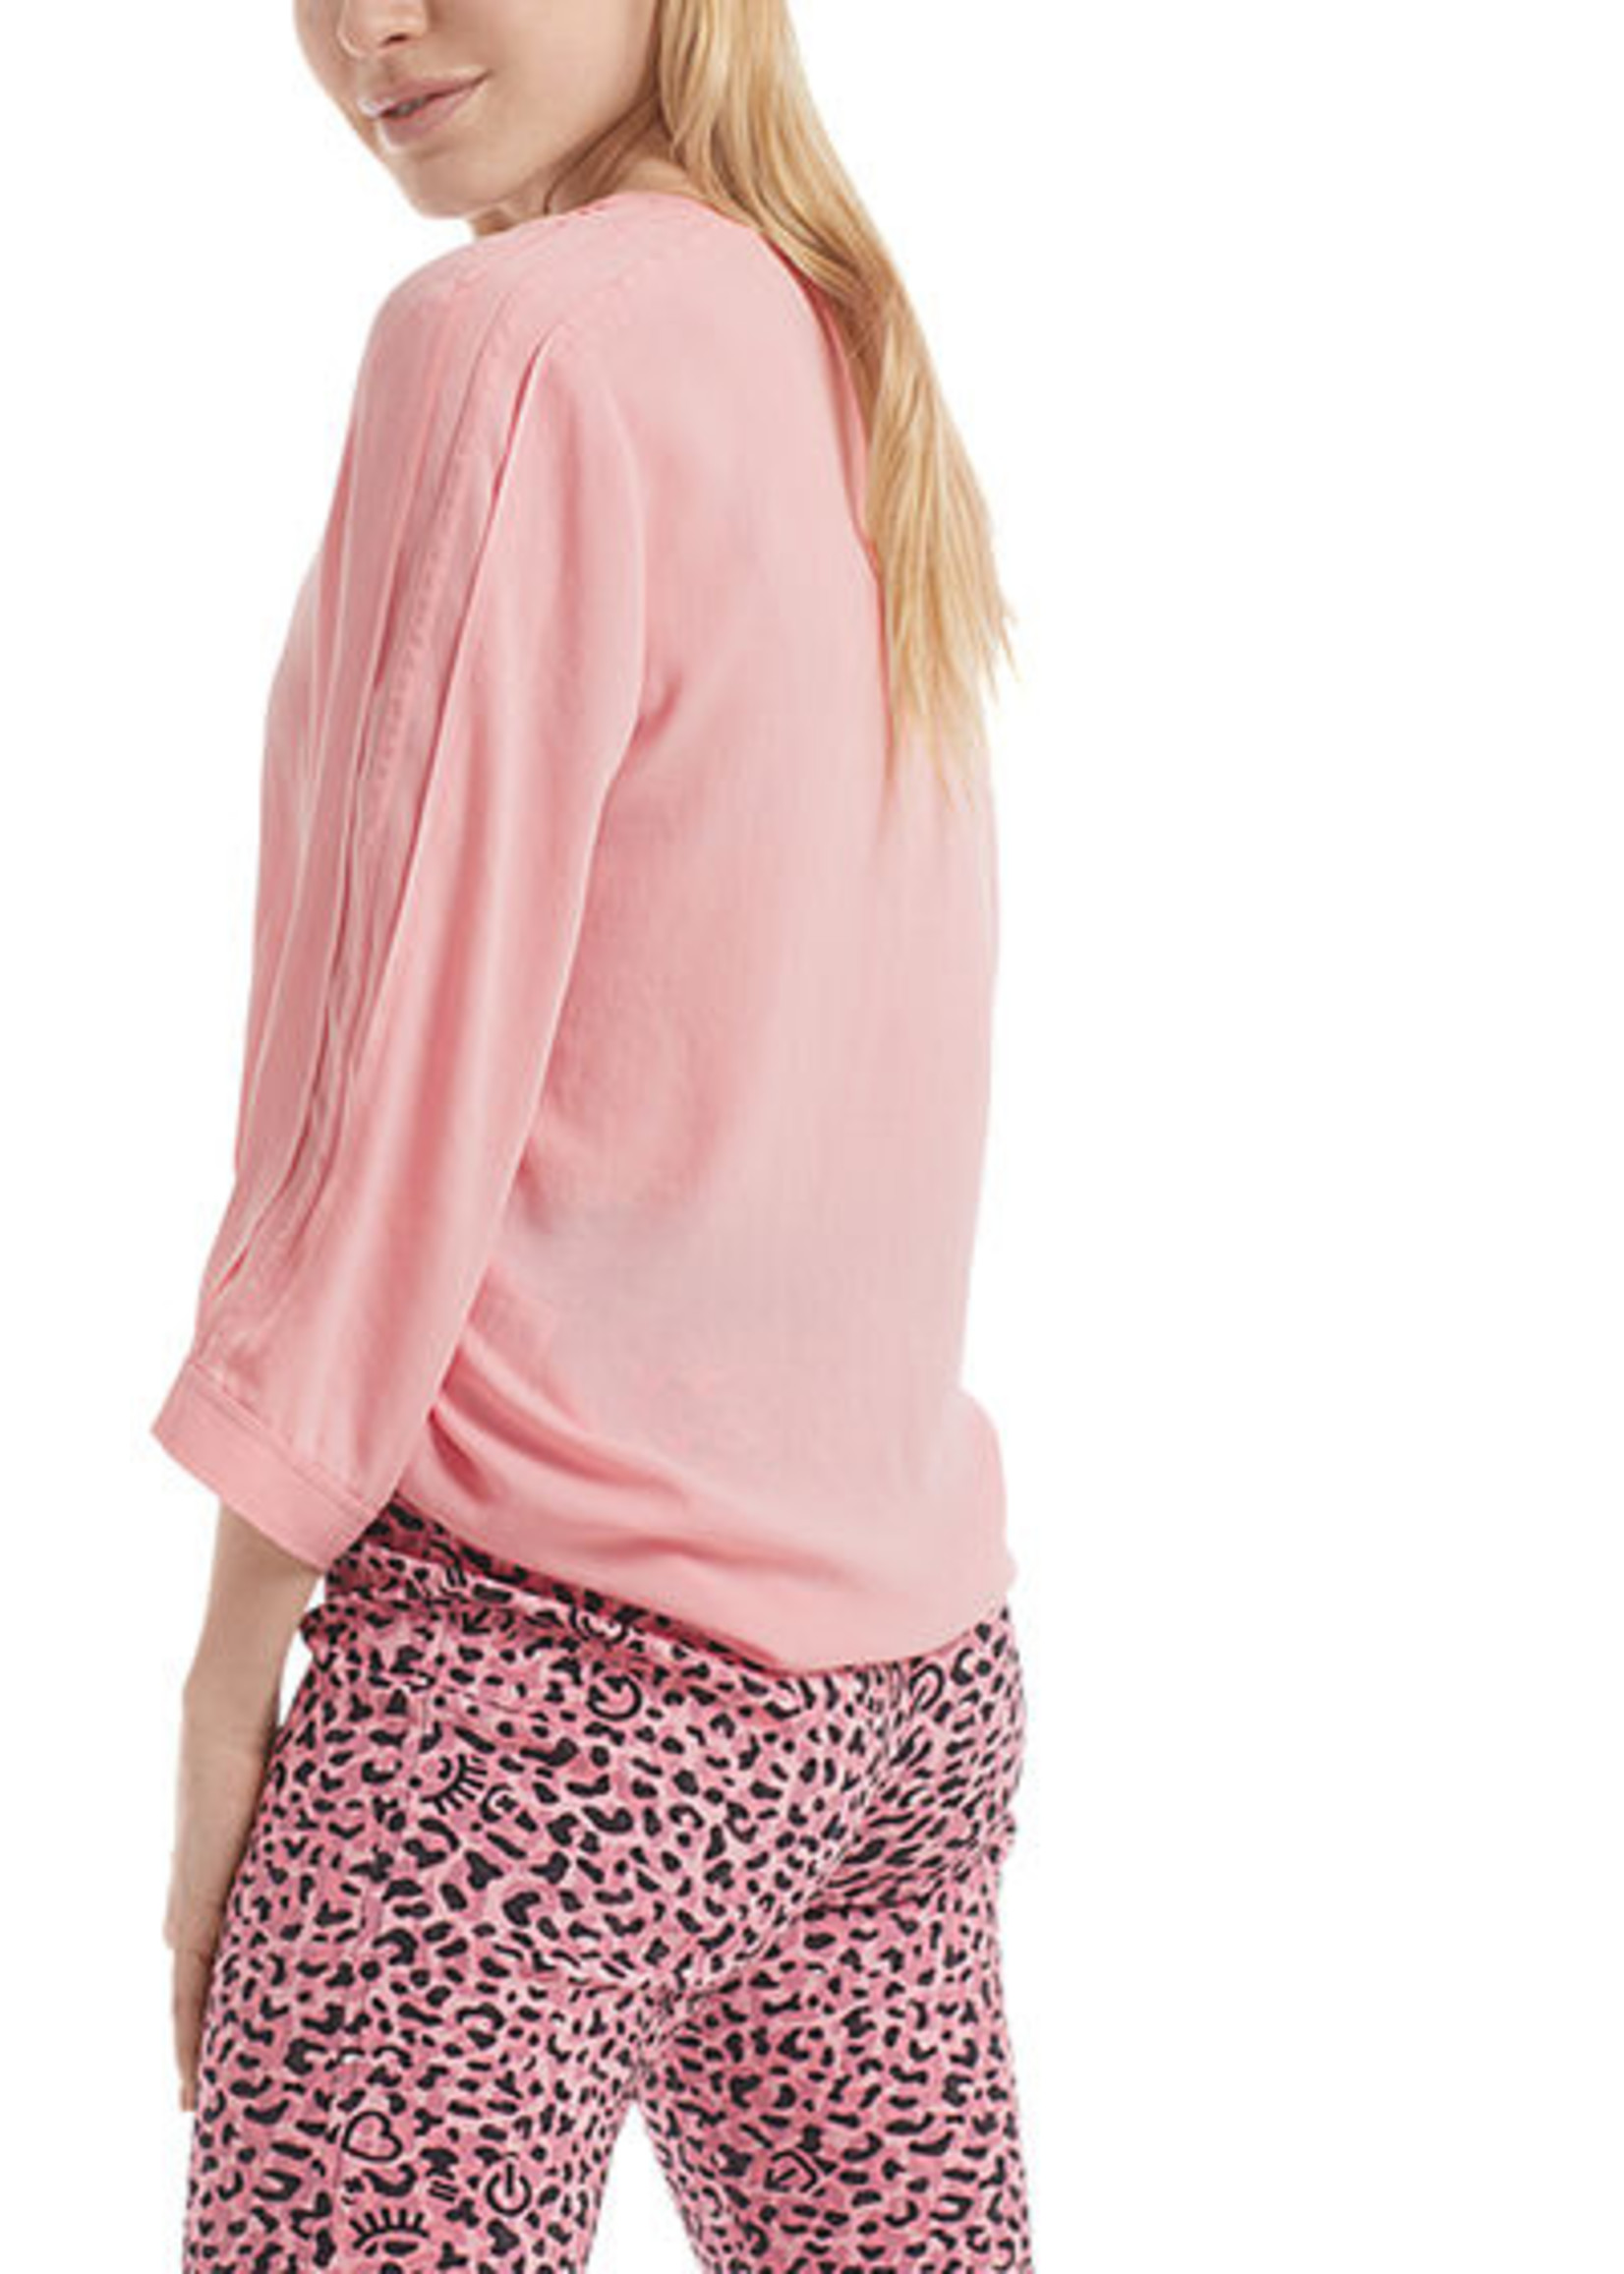 Marccain Sports Blouse RS 55.10 W41 coralblush